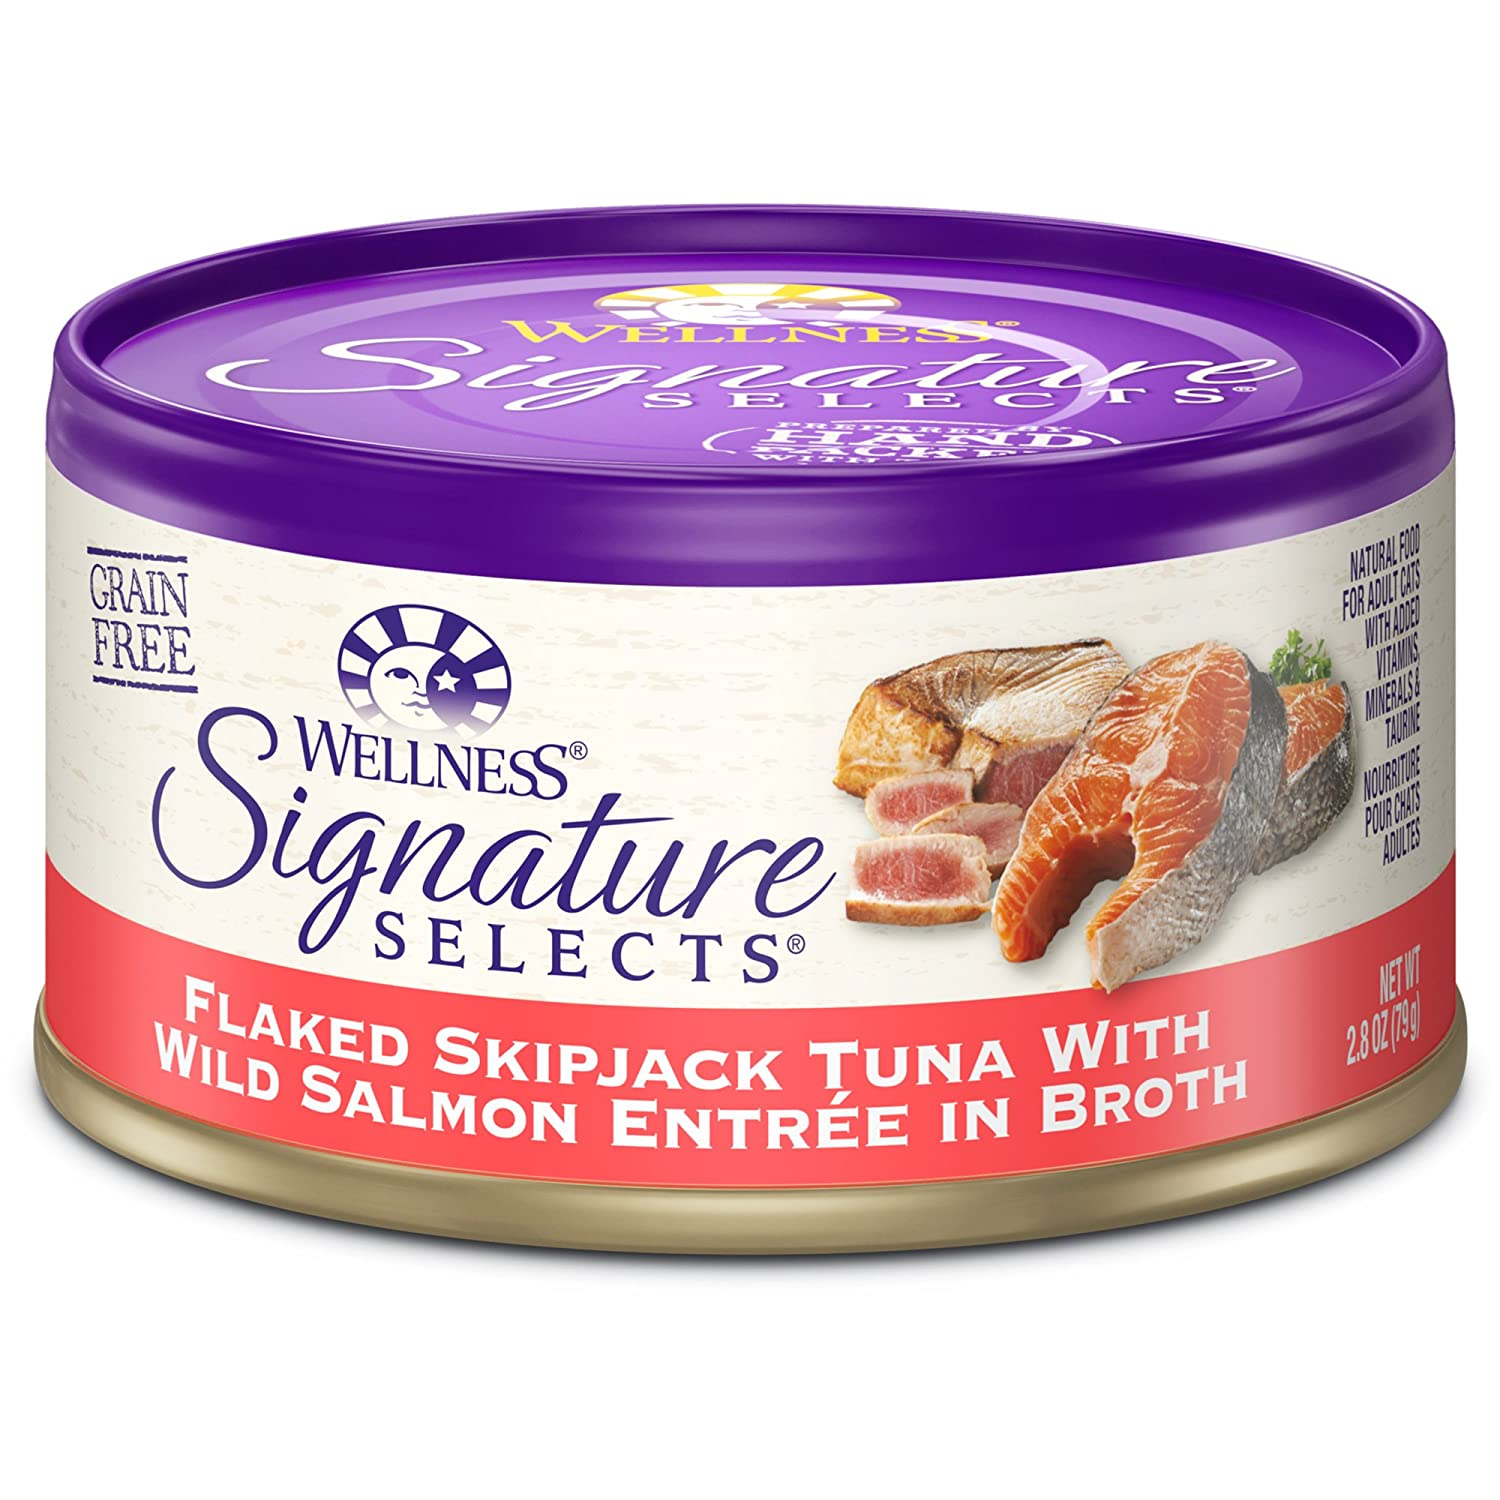 Wellness Signature Selects Natural Canned Grain Free Wet Cat Food (Pack of 24)